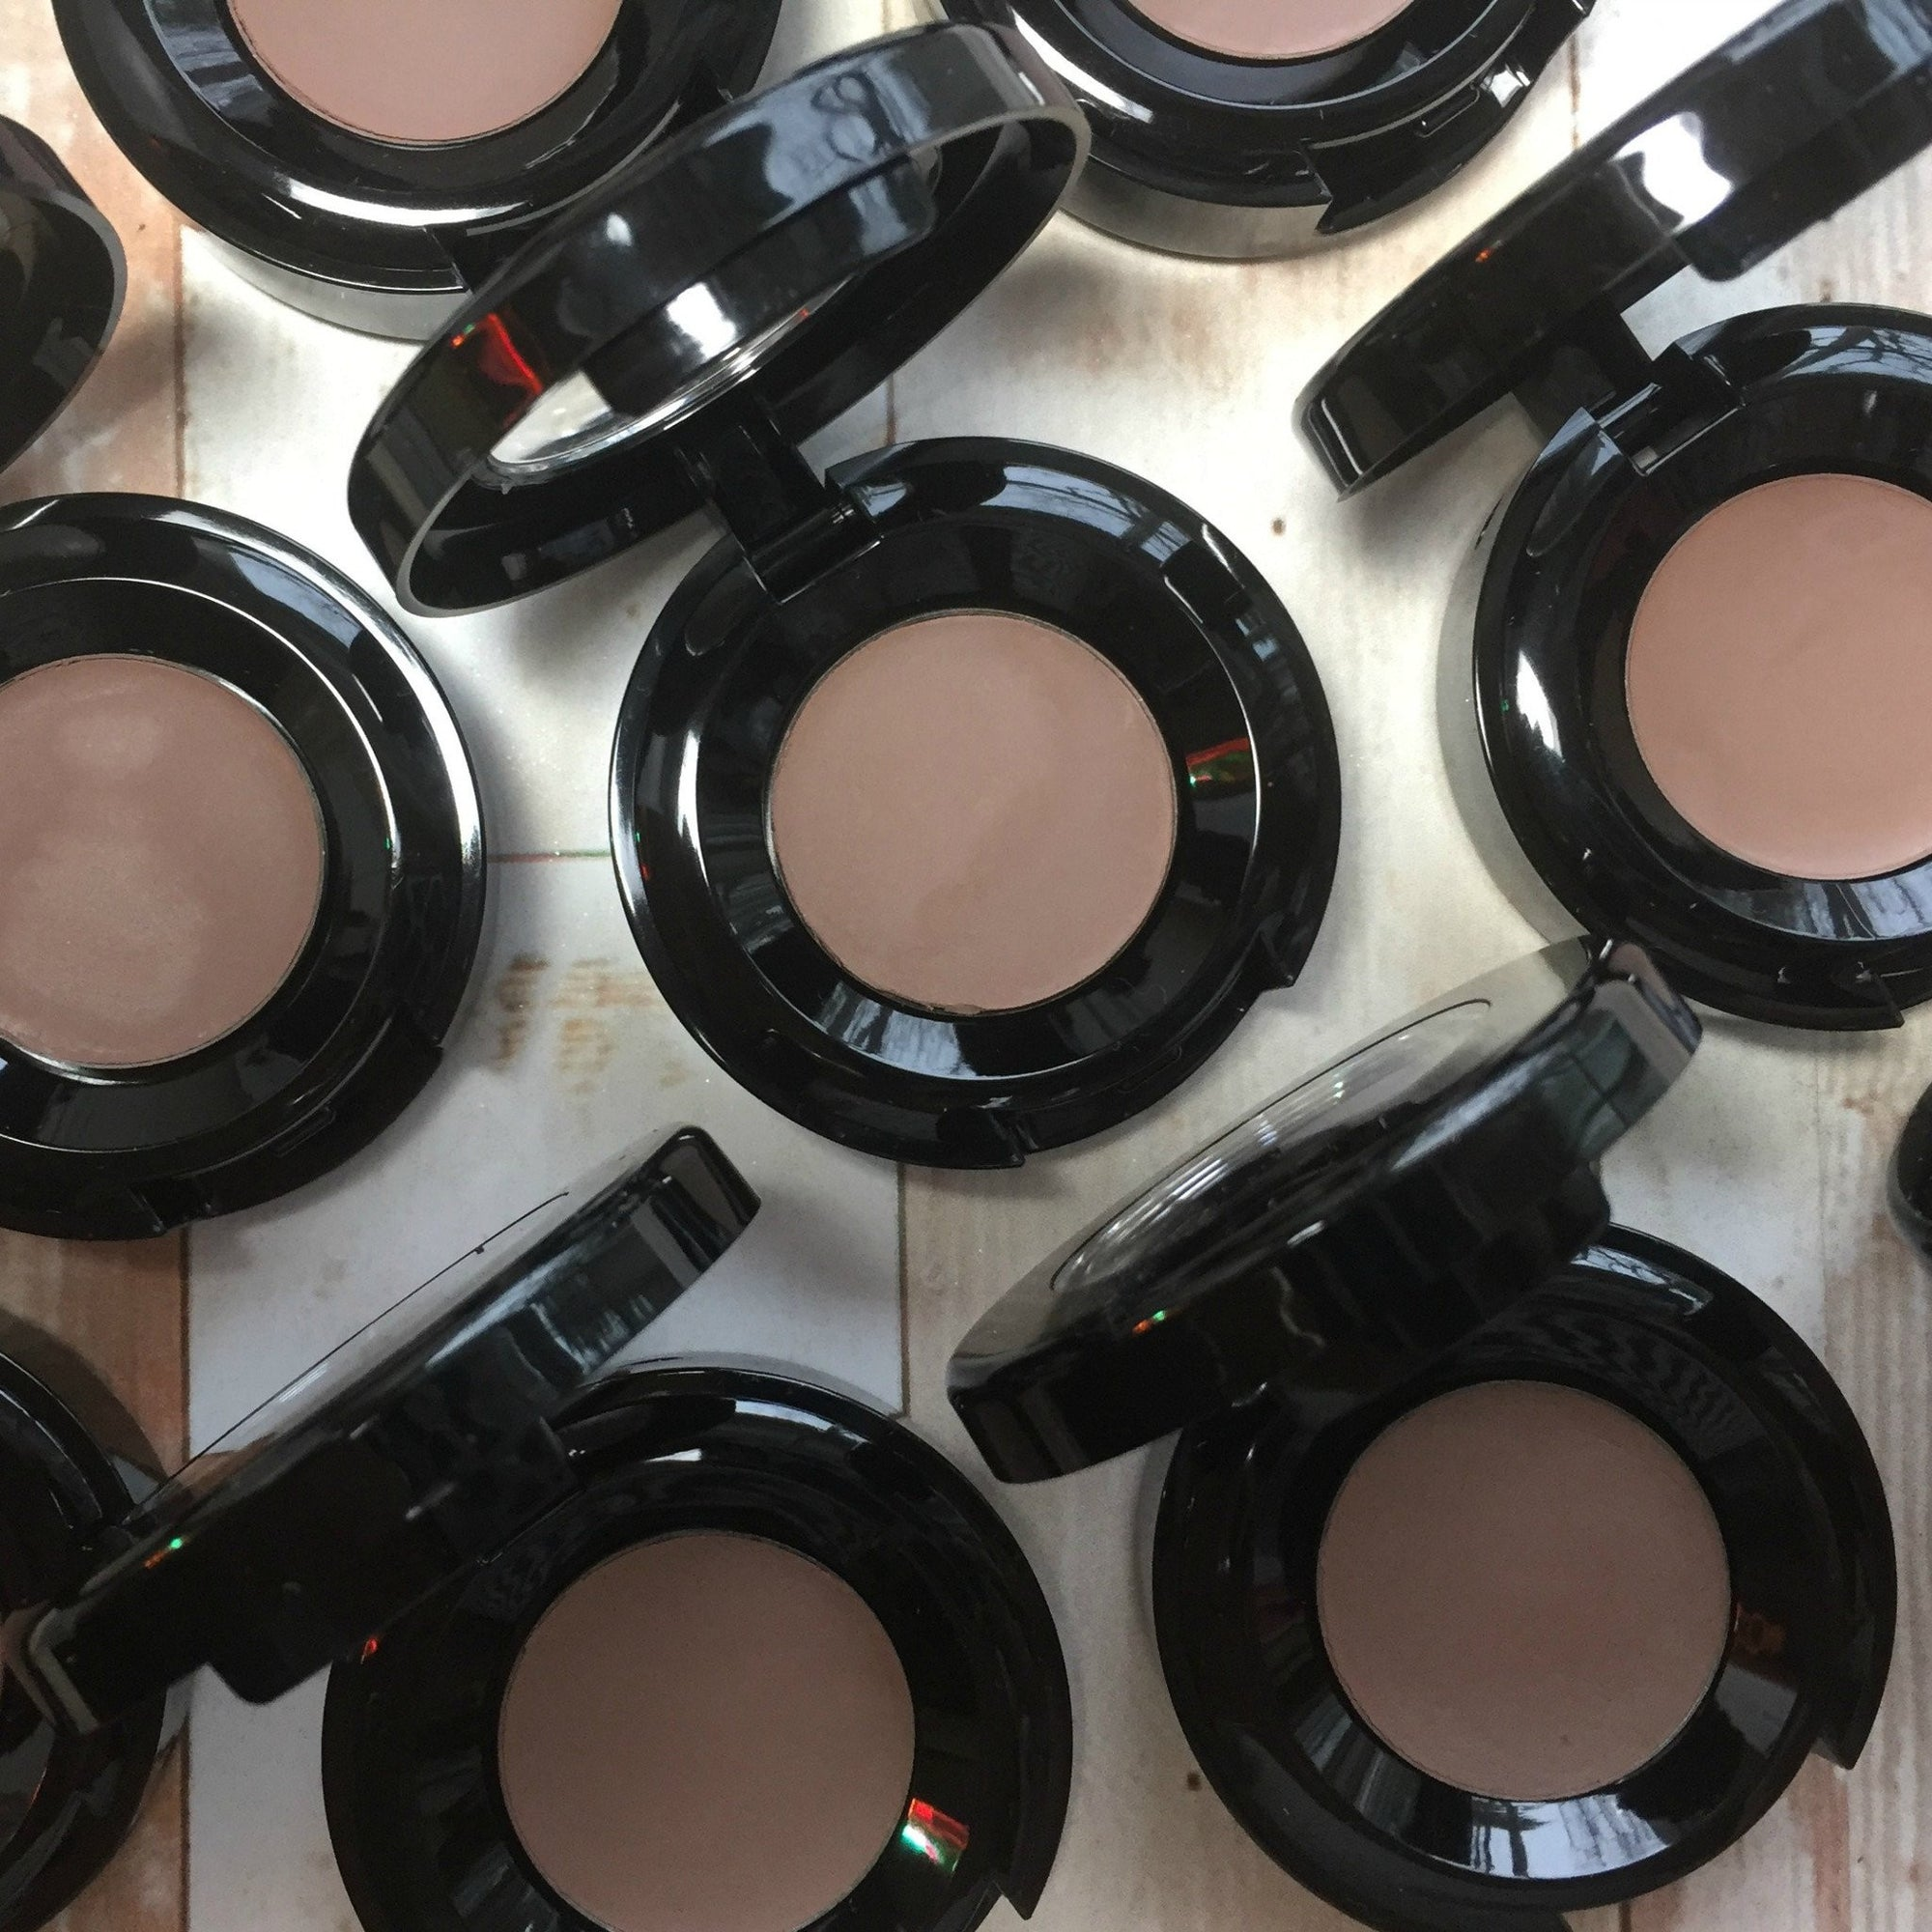 Brow Pomade - Cruelty Free Makeup, Best Mineral Makeup, Natural Beauty Products, Orglamix